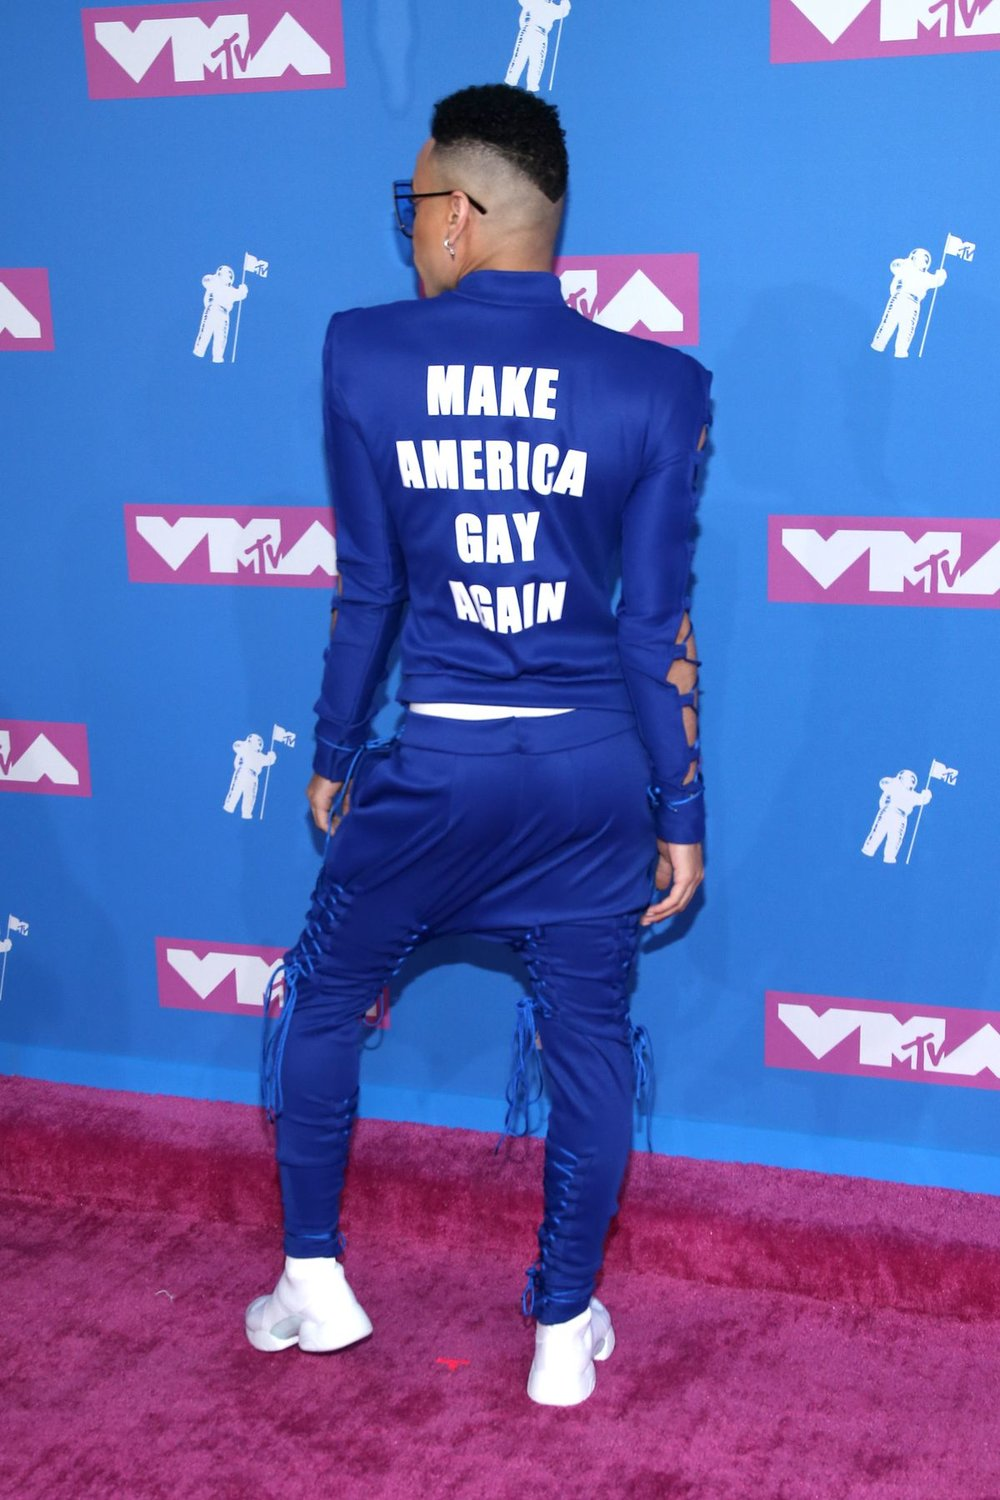 the-sitch-MTV-VMA-Bobby-Lytes2.jpg